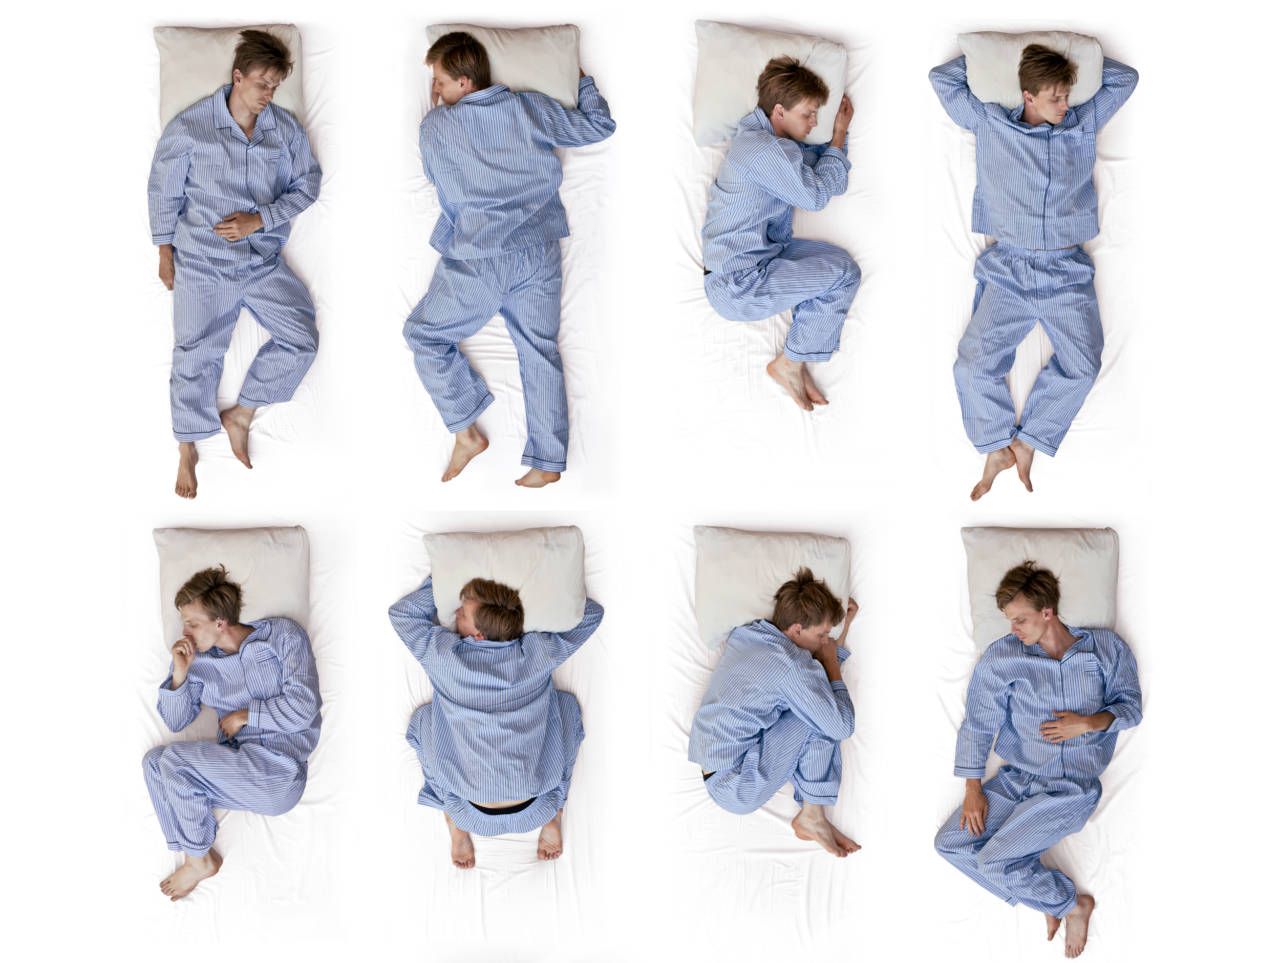 sleeping positions and branding